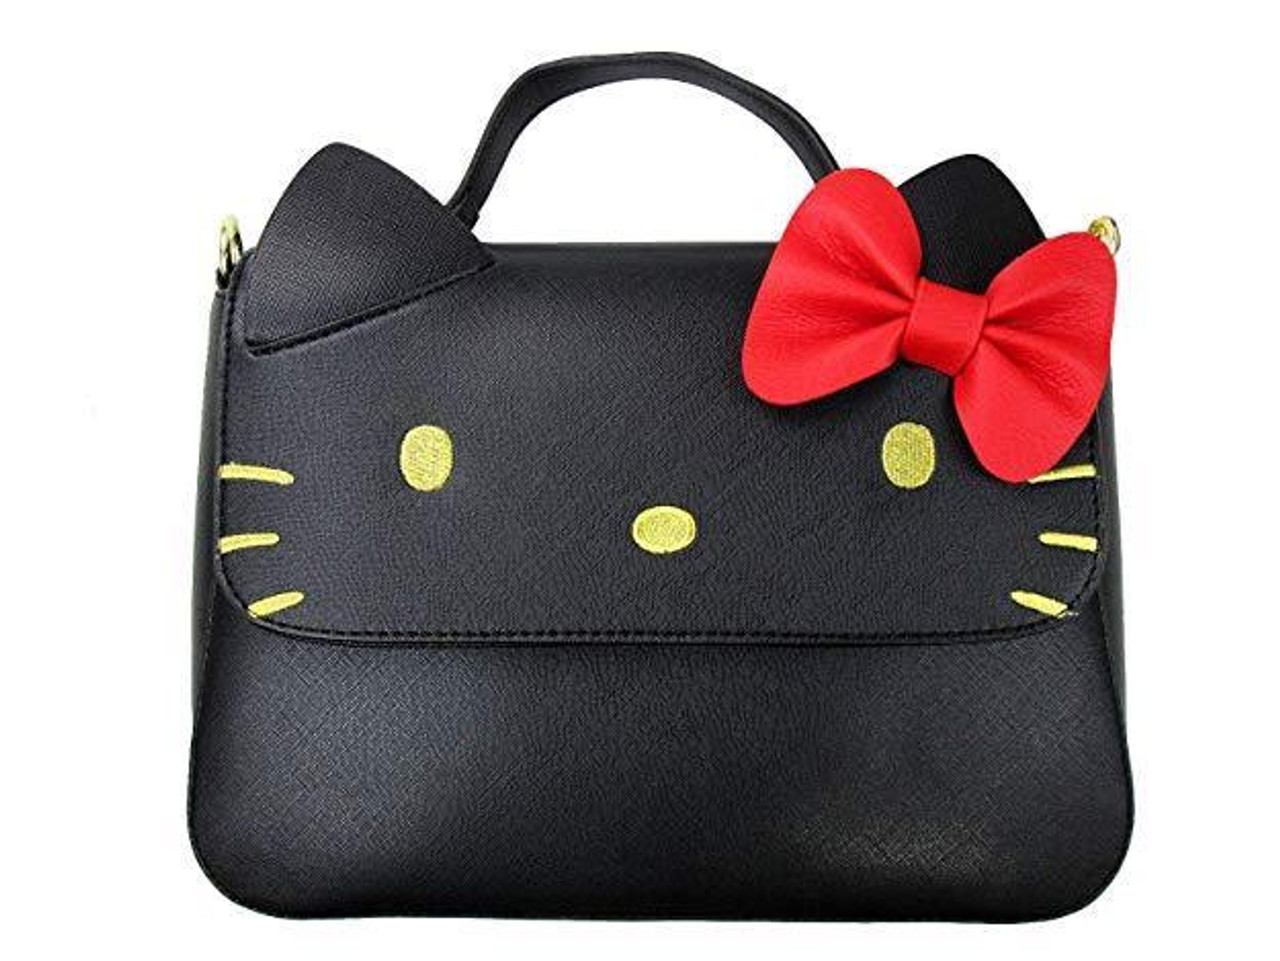 e6c0b822a Loungefly Sanrio Hello Kitty Bow Cute Faux Leather Crossbody Purse Bag  SANTB1597